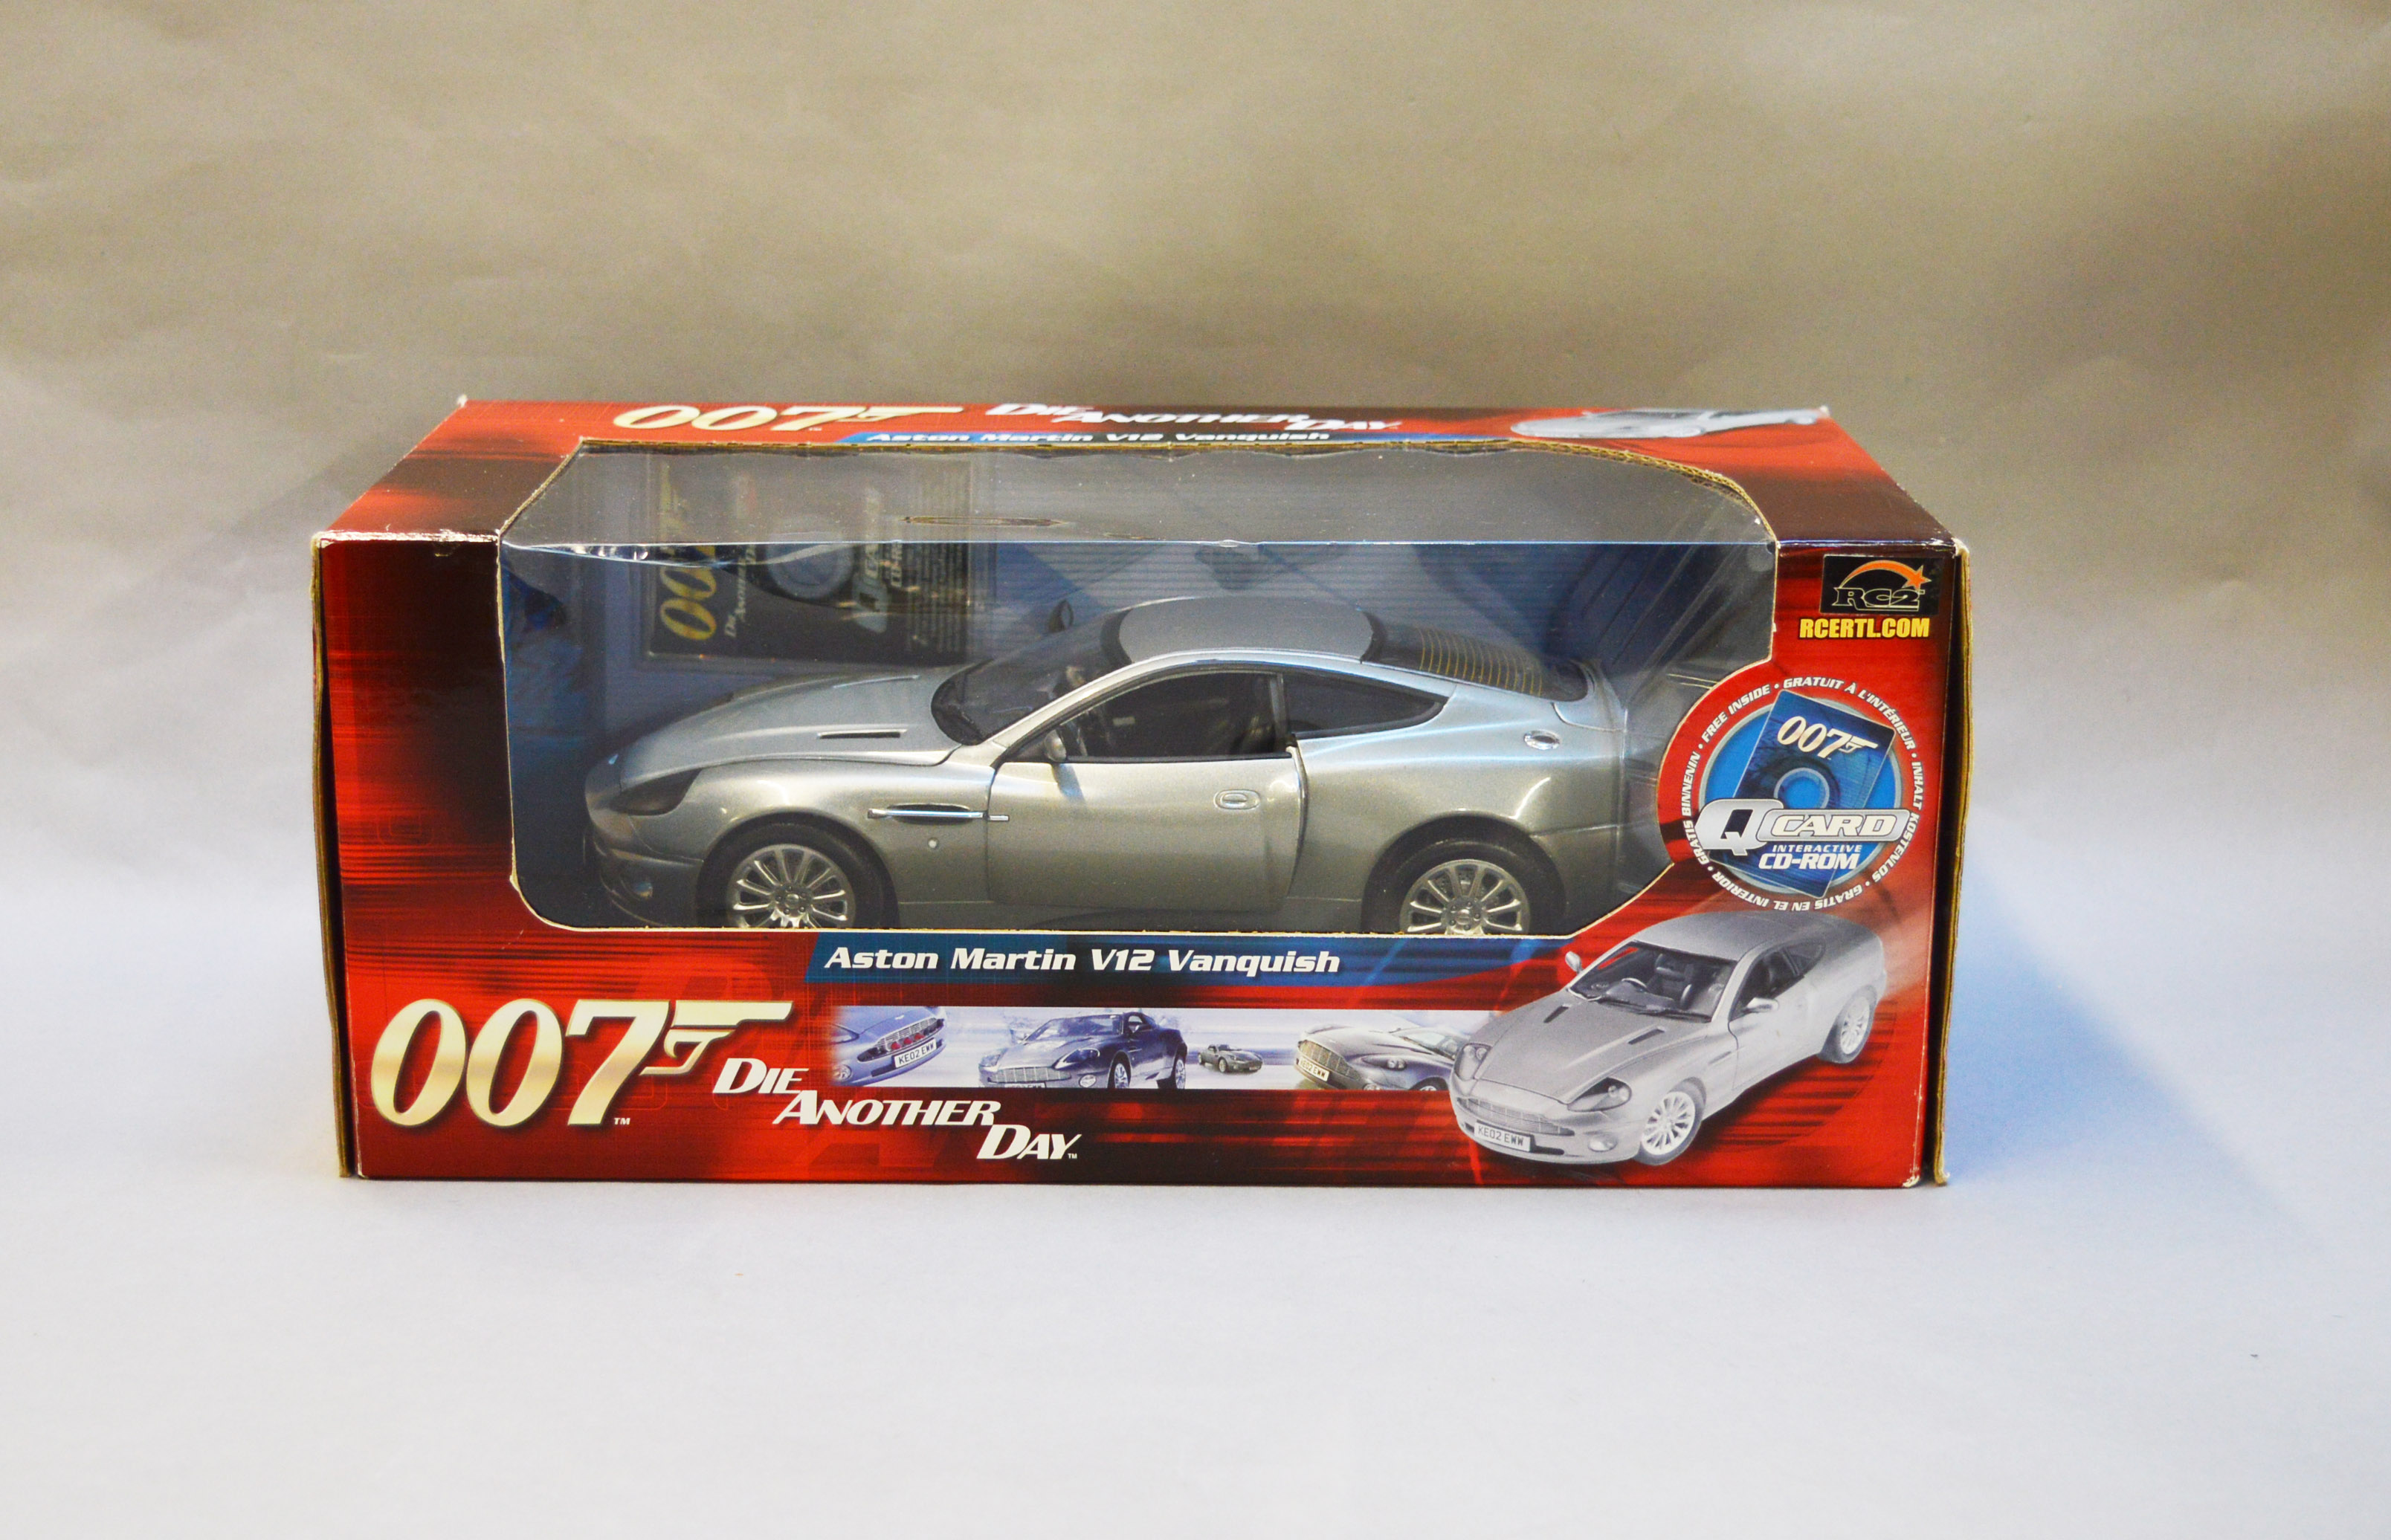 Lot 6 - James Bond 007. A boxed Joyride 1:18 scale Aston Martin V12 Vanquish, issued in 2005, modelled on